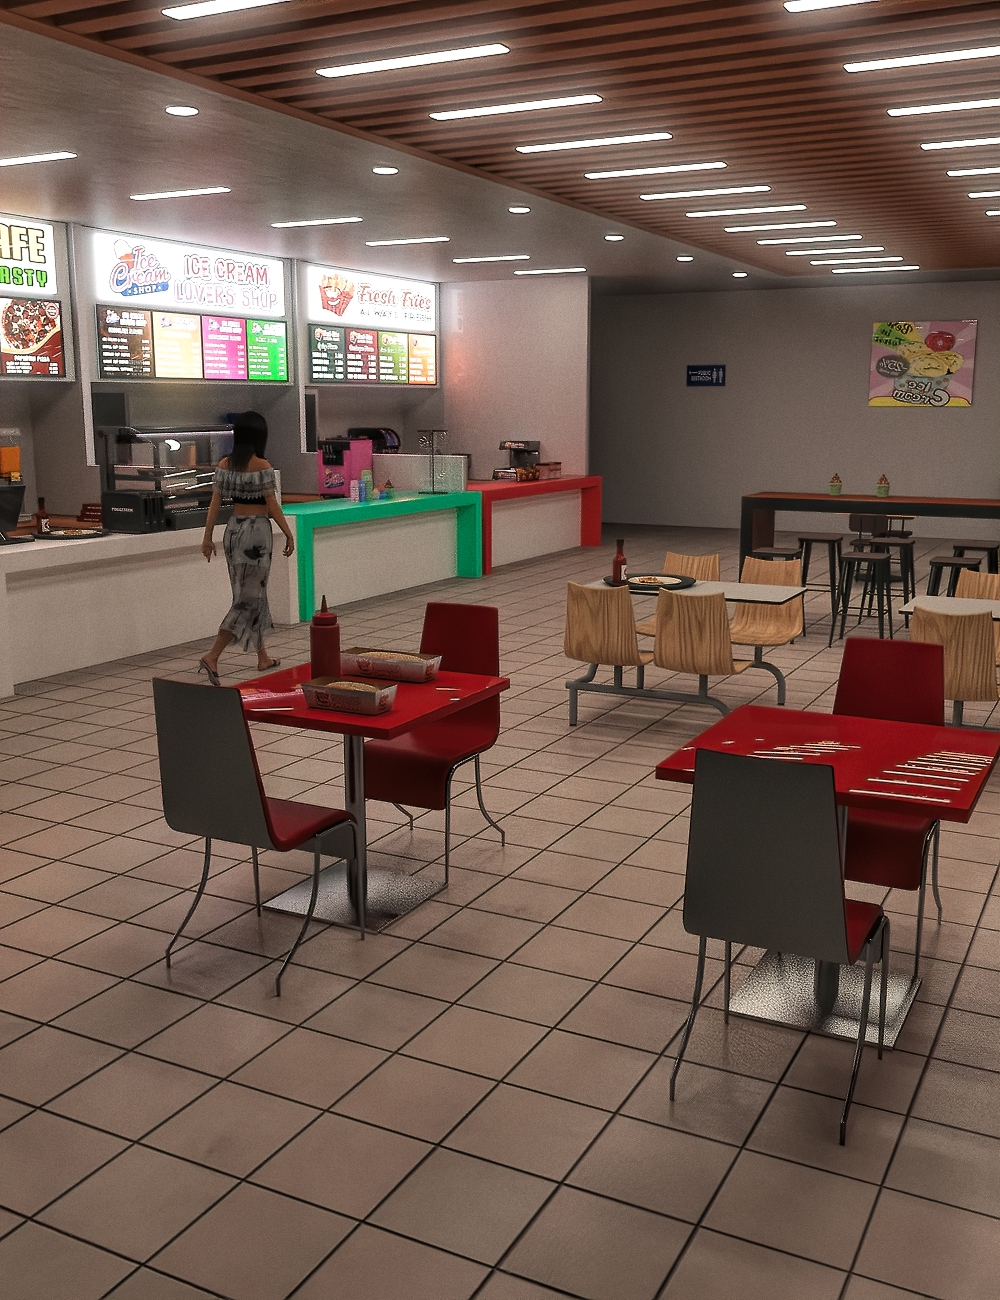 FG Food Court by: Fugazi1968PAN StudiosIronman, 3D Models by Daz 3D